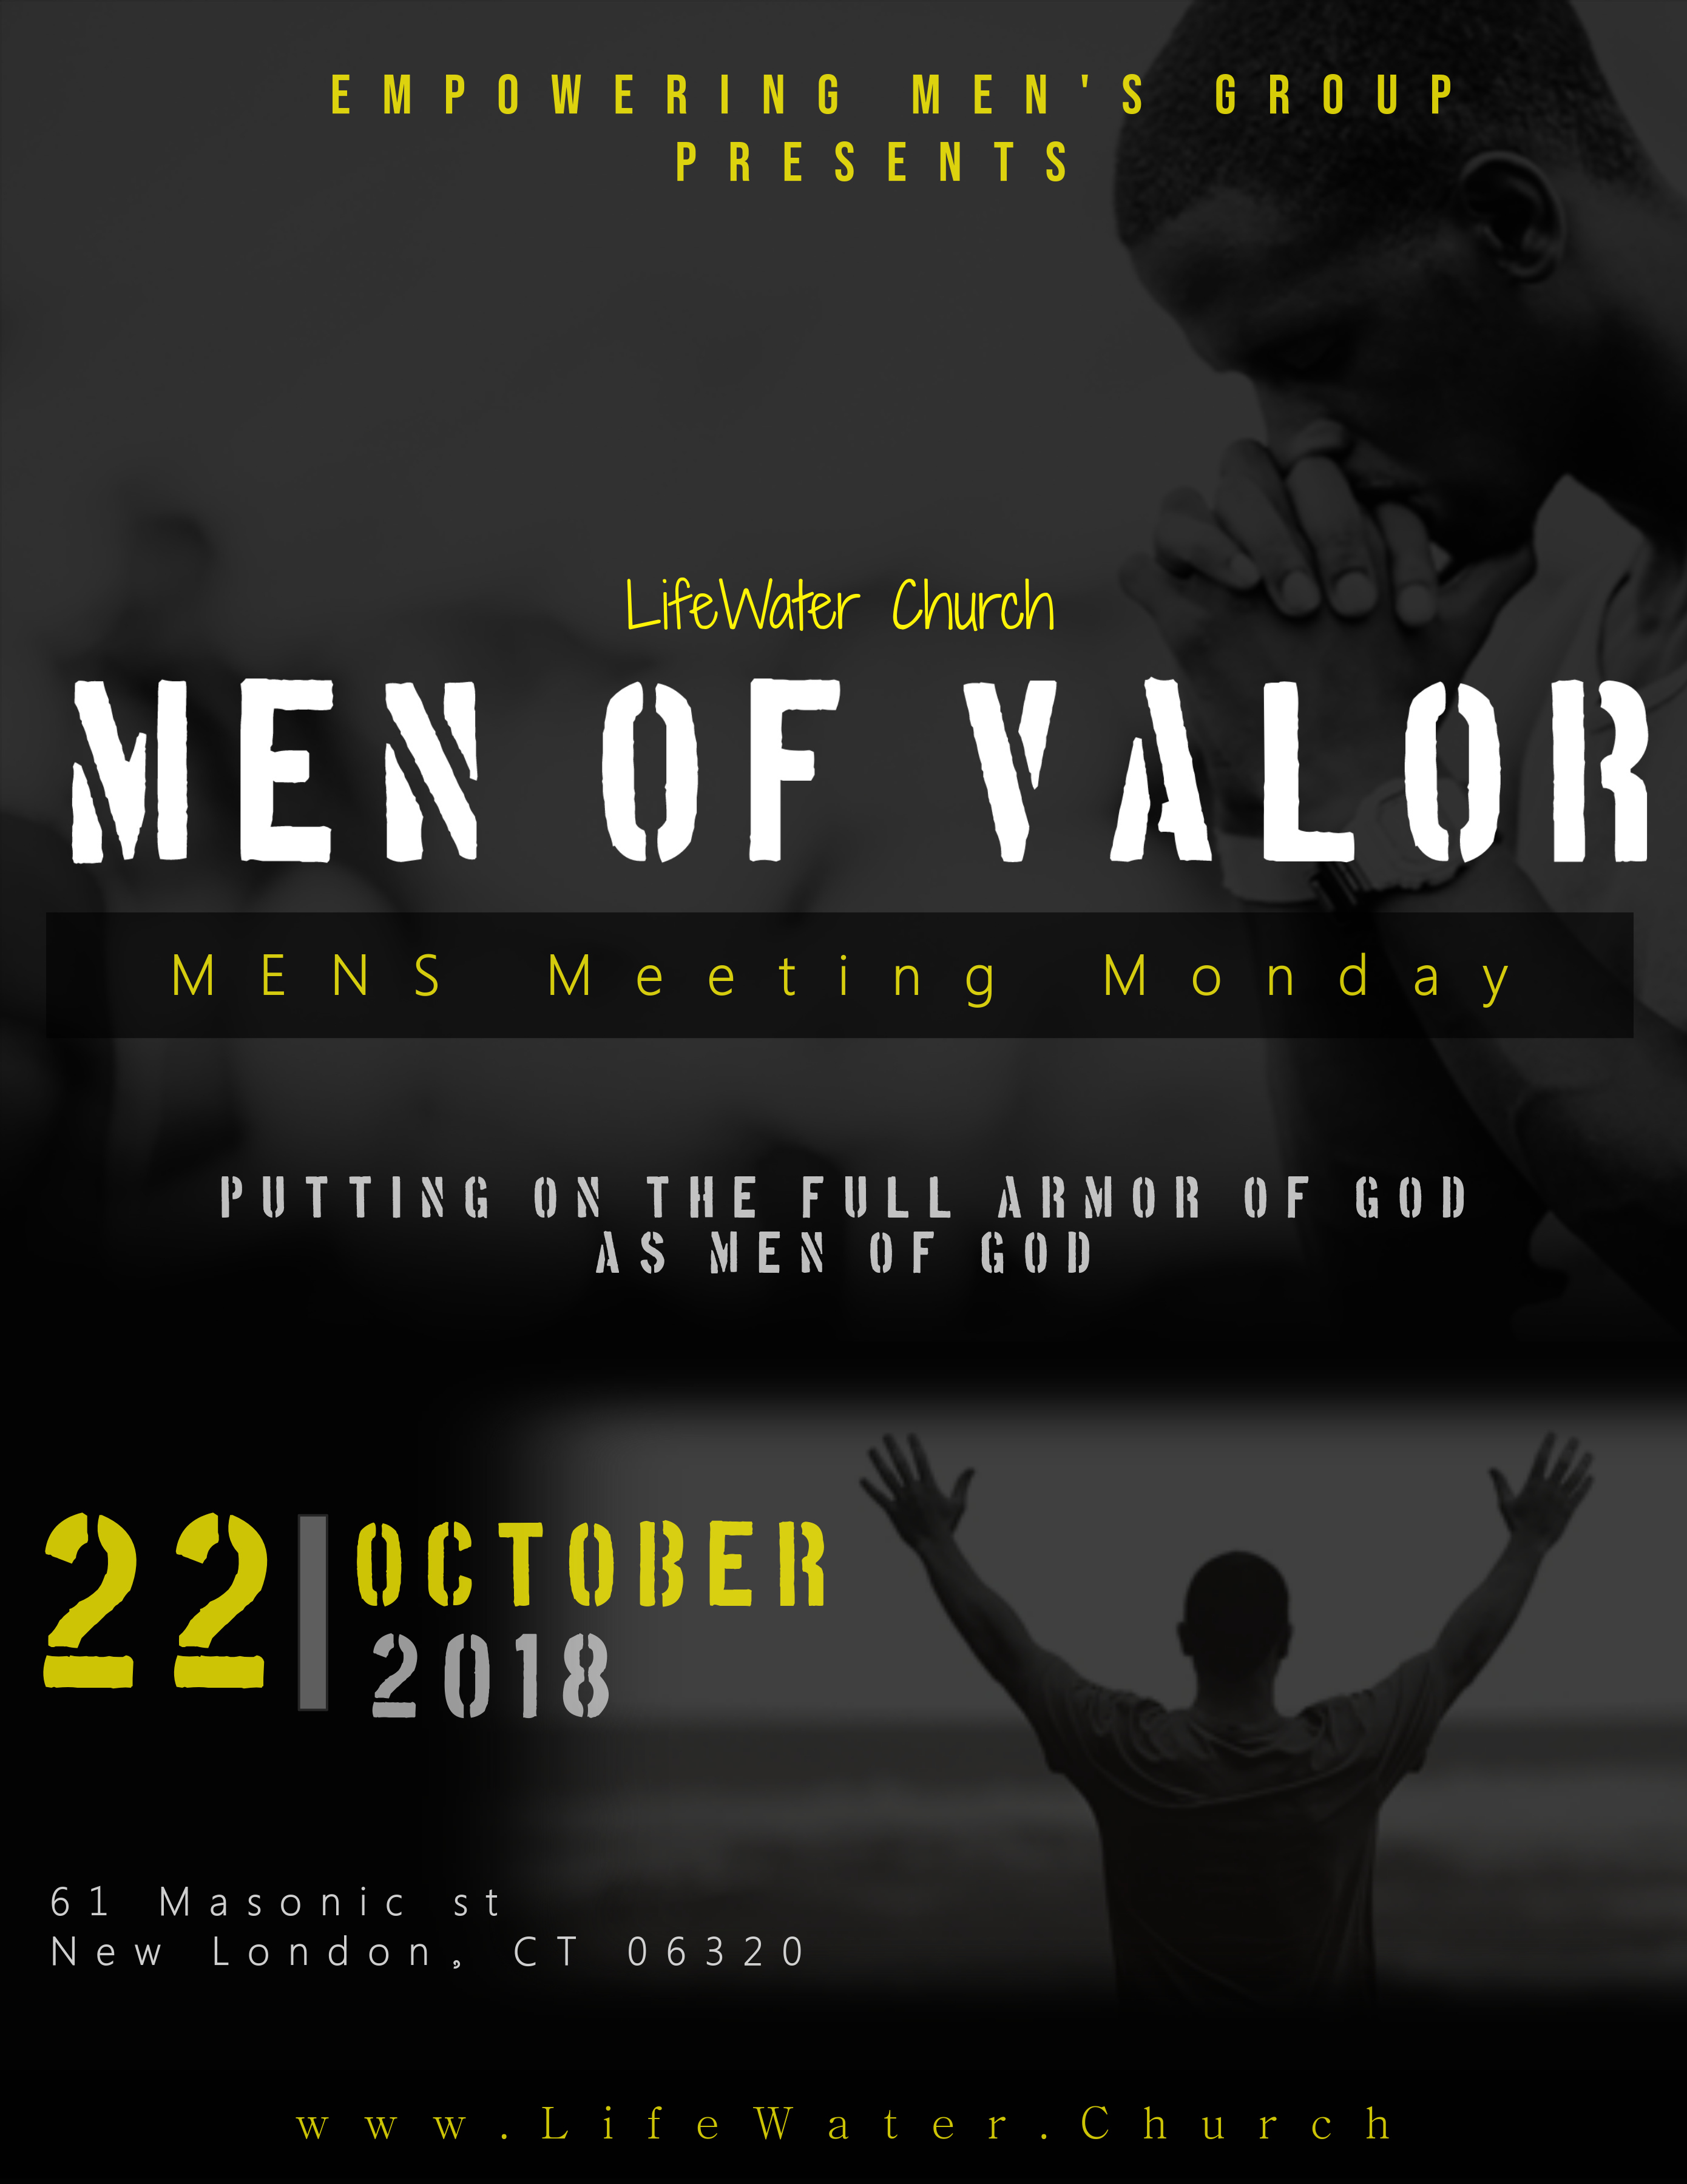 Empowering mens ministry